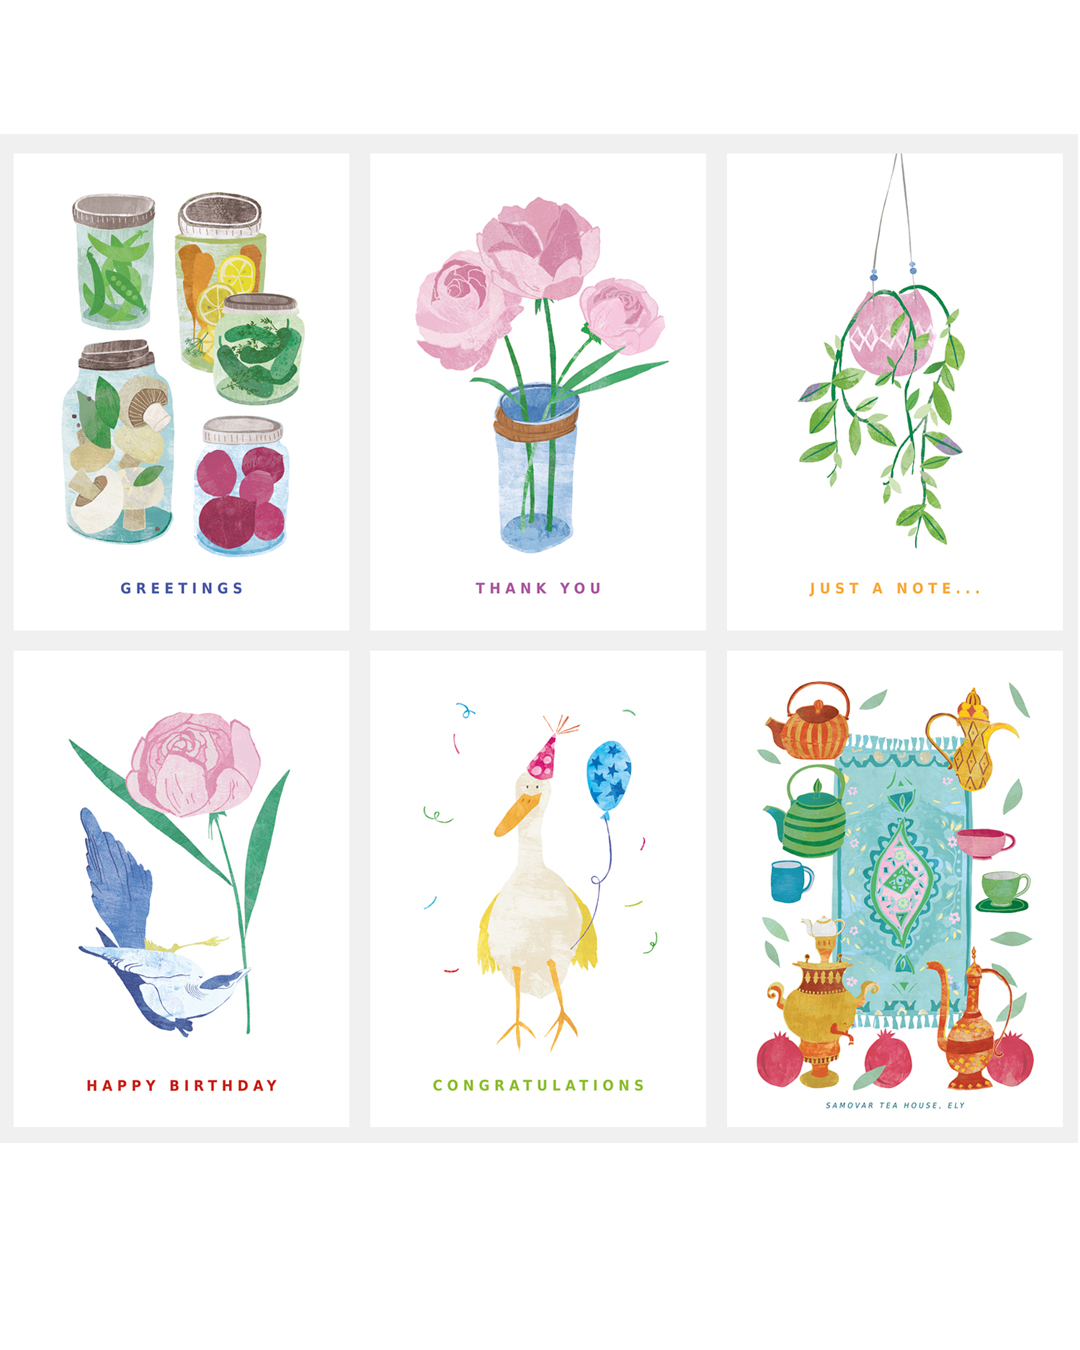 illustrated greetings cards